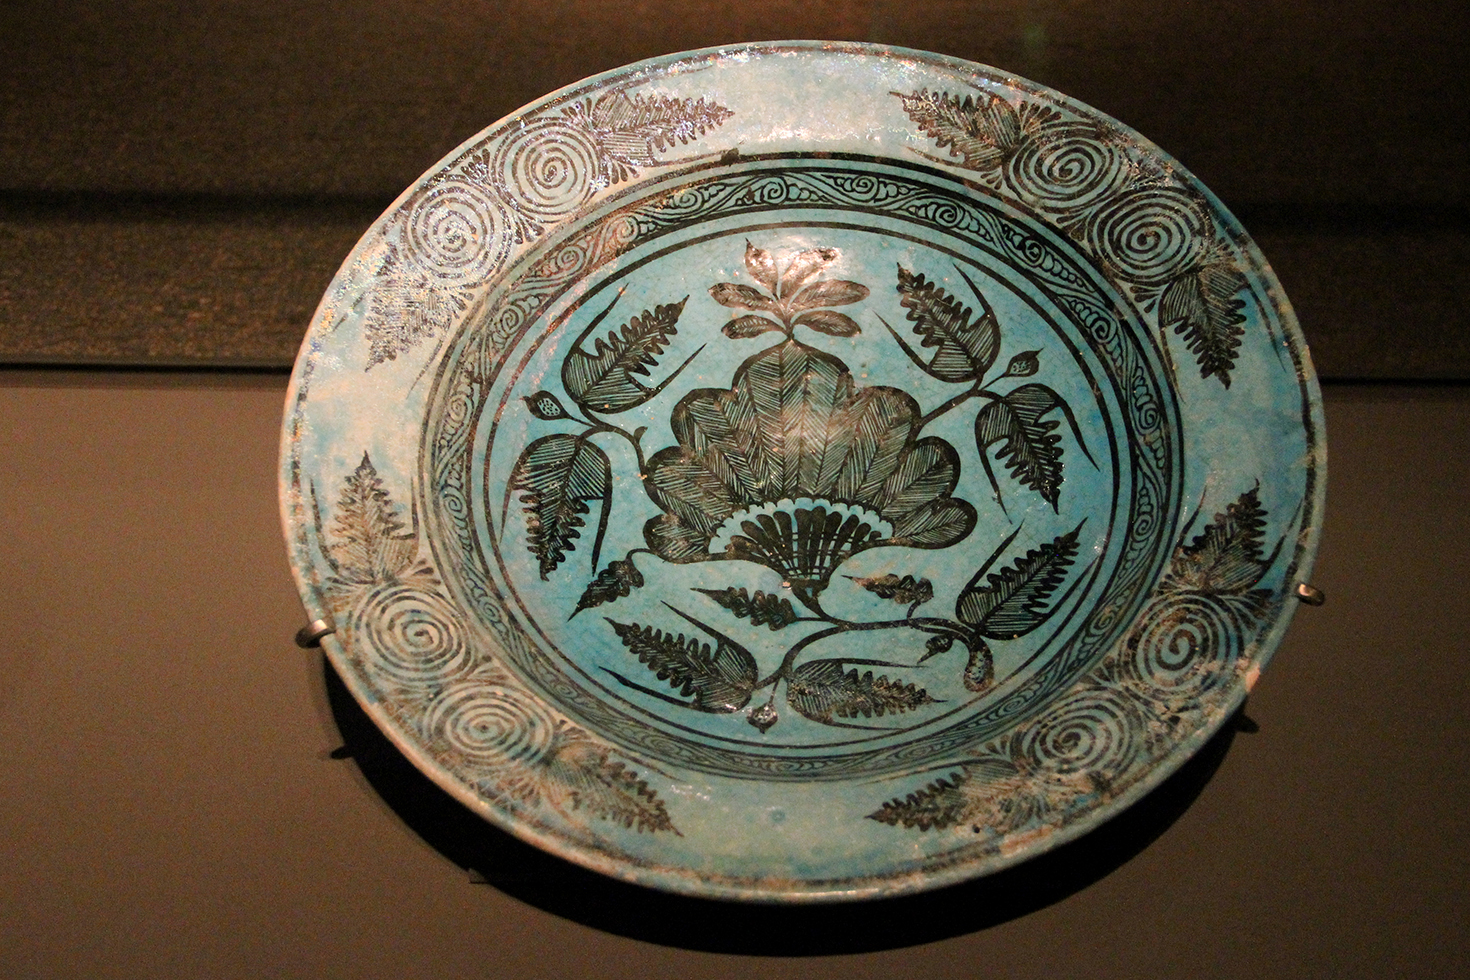 15th Century Iranian Dish, Museum of Islamic Art | Doha, Qatar